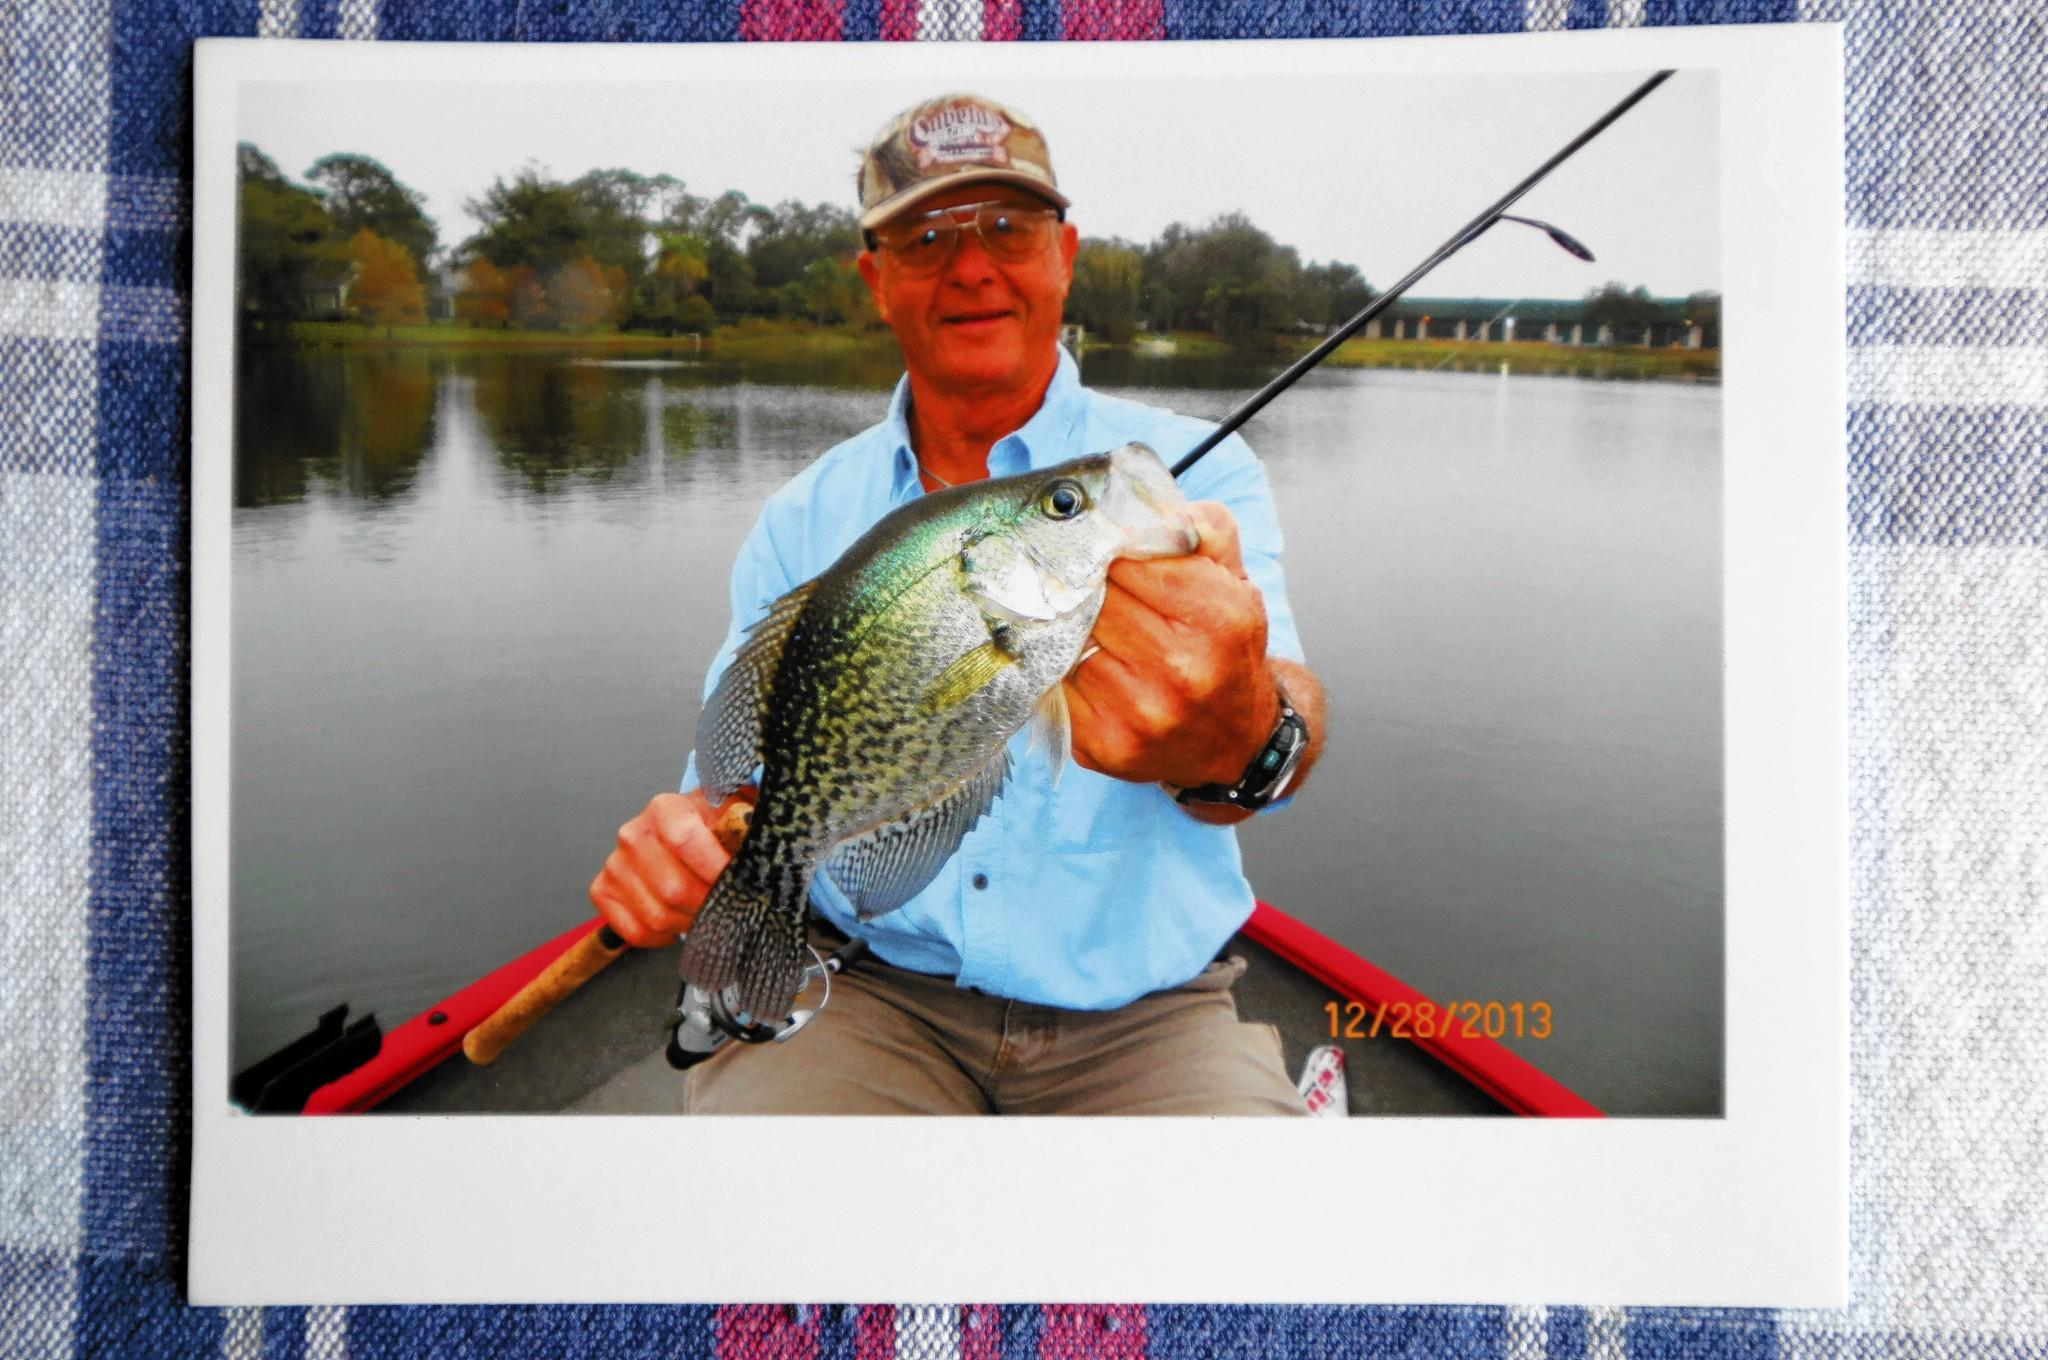 Photo of Pat McDaniel holding a black crappie, his 200,000 catch. McDaniel is a prolific Orlando fisherman who set a record by catching his 200,000th fish.